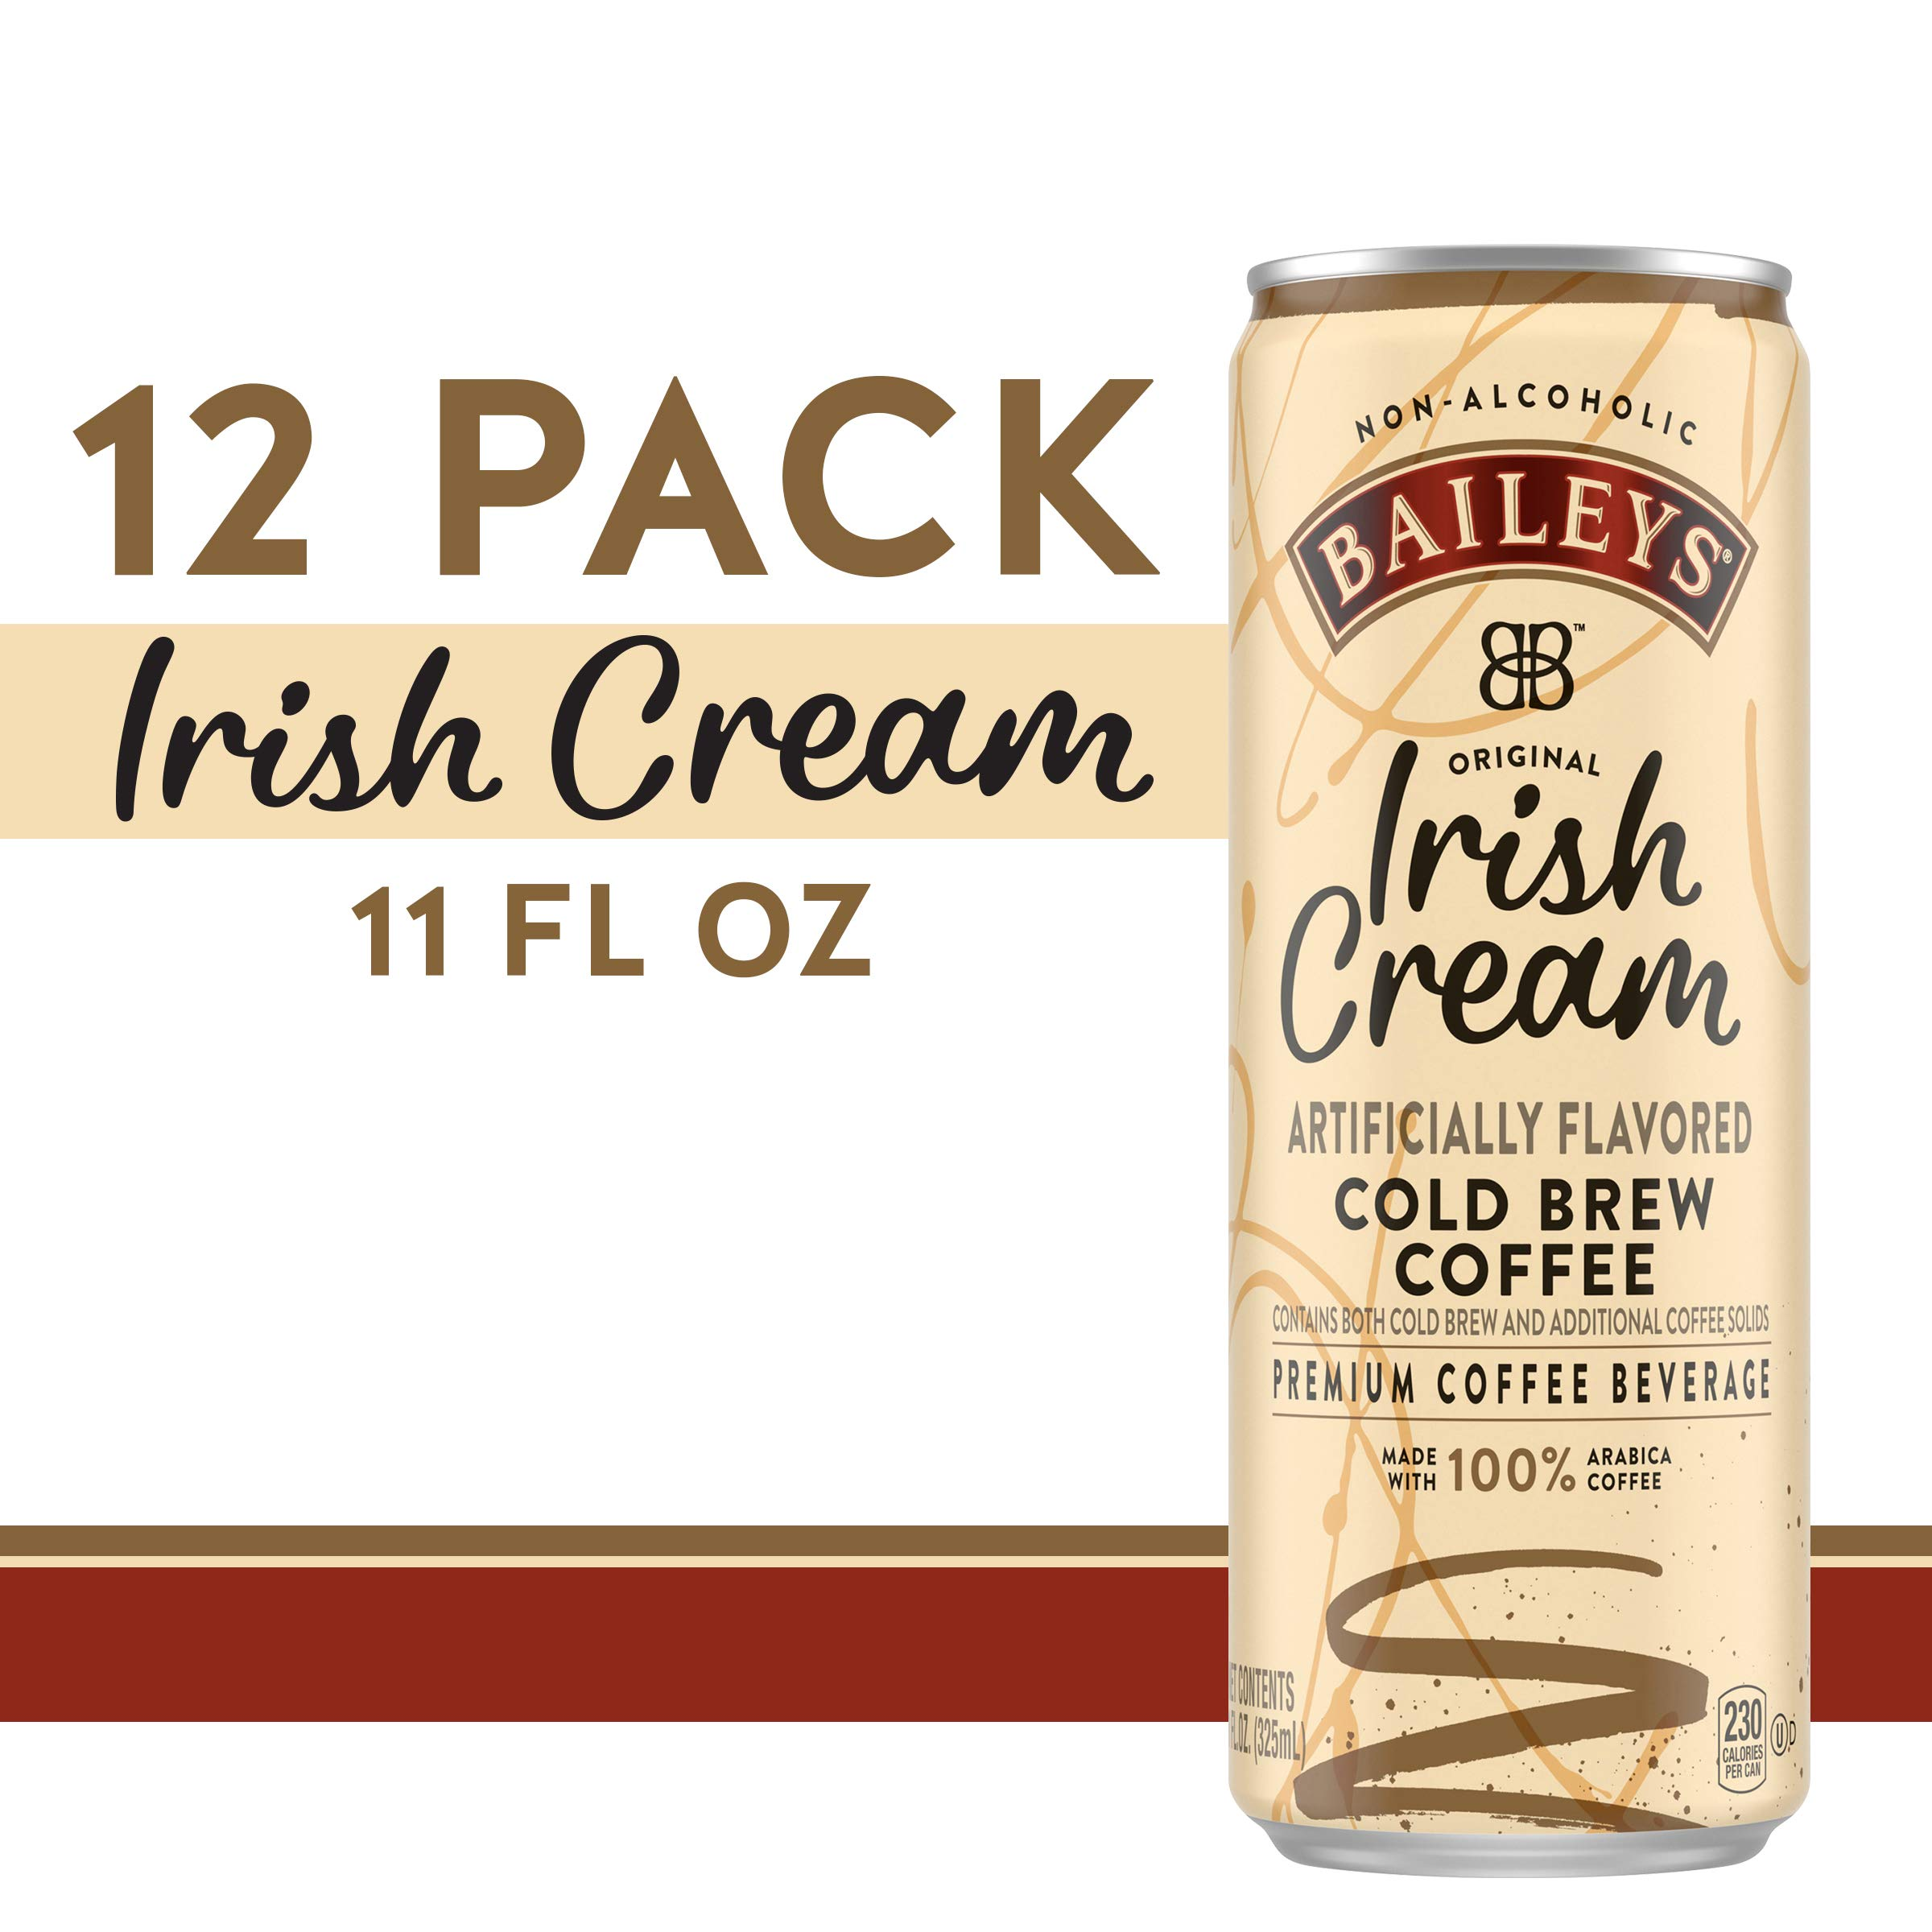 Baileys Non-Alcoholic Original Irish Cream Flavored Cold Brew Coffee, 11 fl oz can (Pack of 12) by BAILEYS